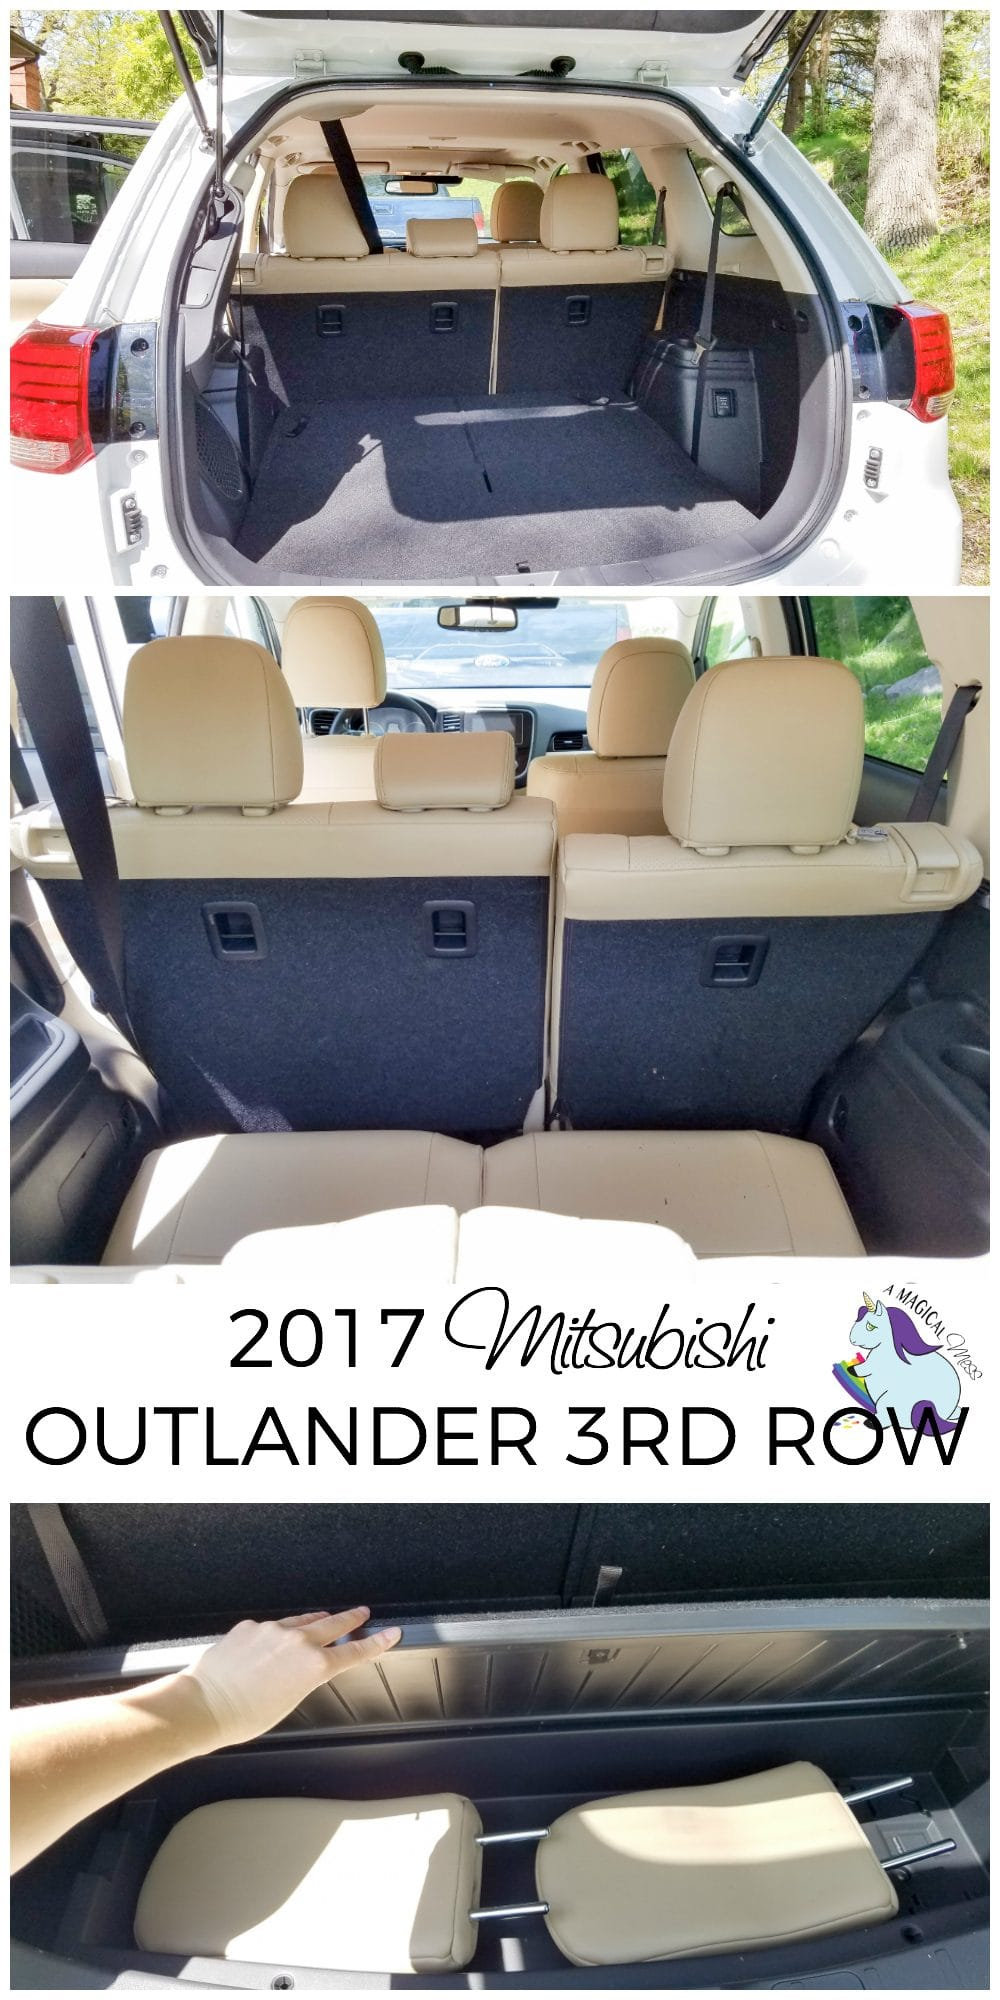 2017 Mitsubishi Outlander Review